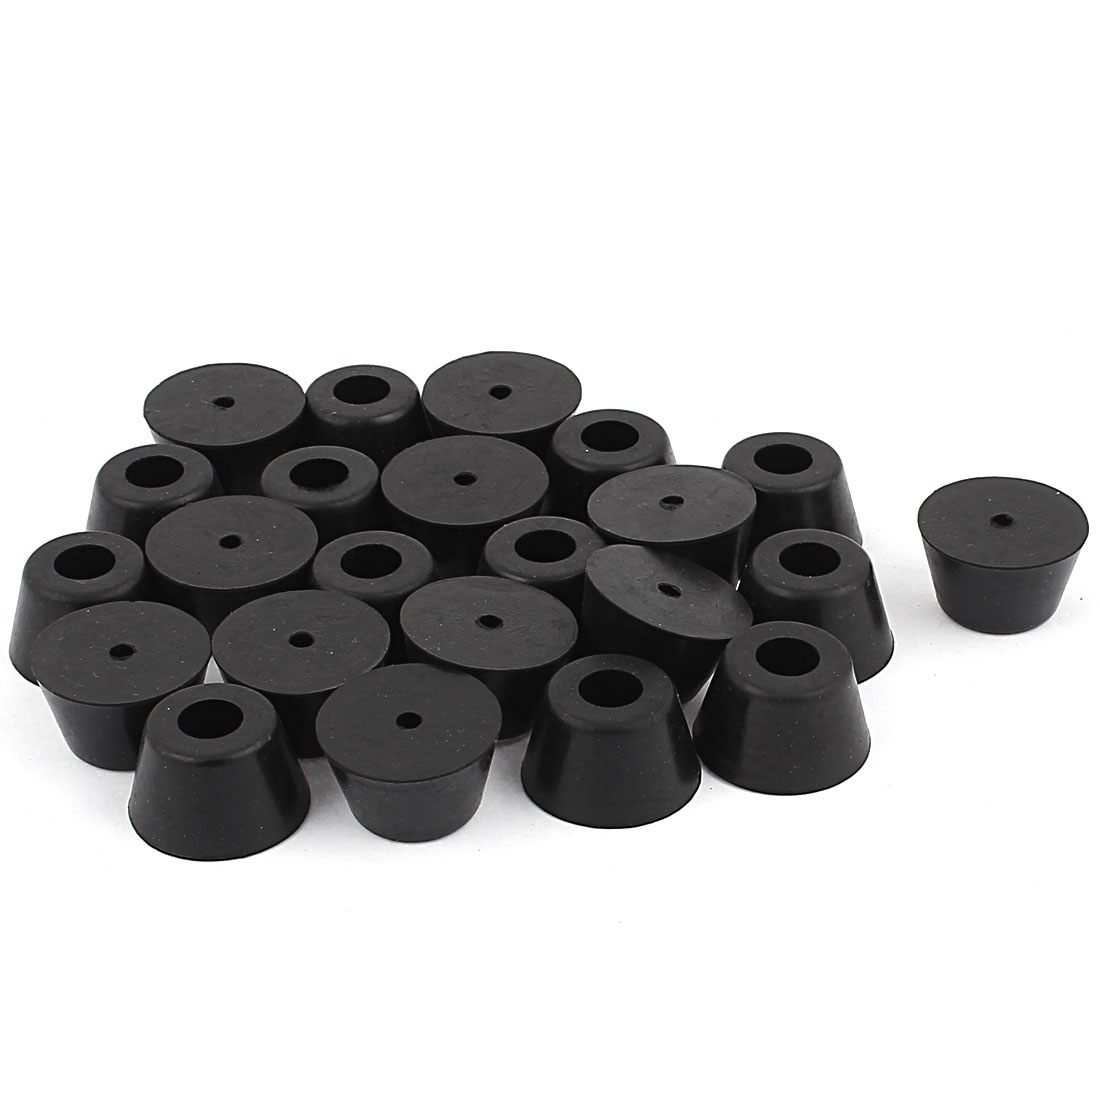 23Pcs XD2515 8 x 25 x 15mm Rubber Conical Shape Table Chair Leg Tips Foot Pad